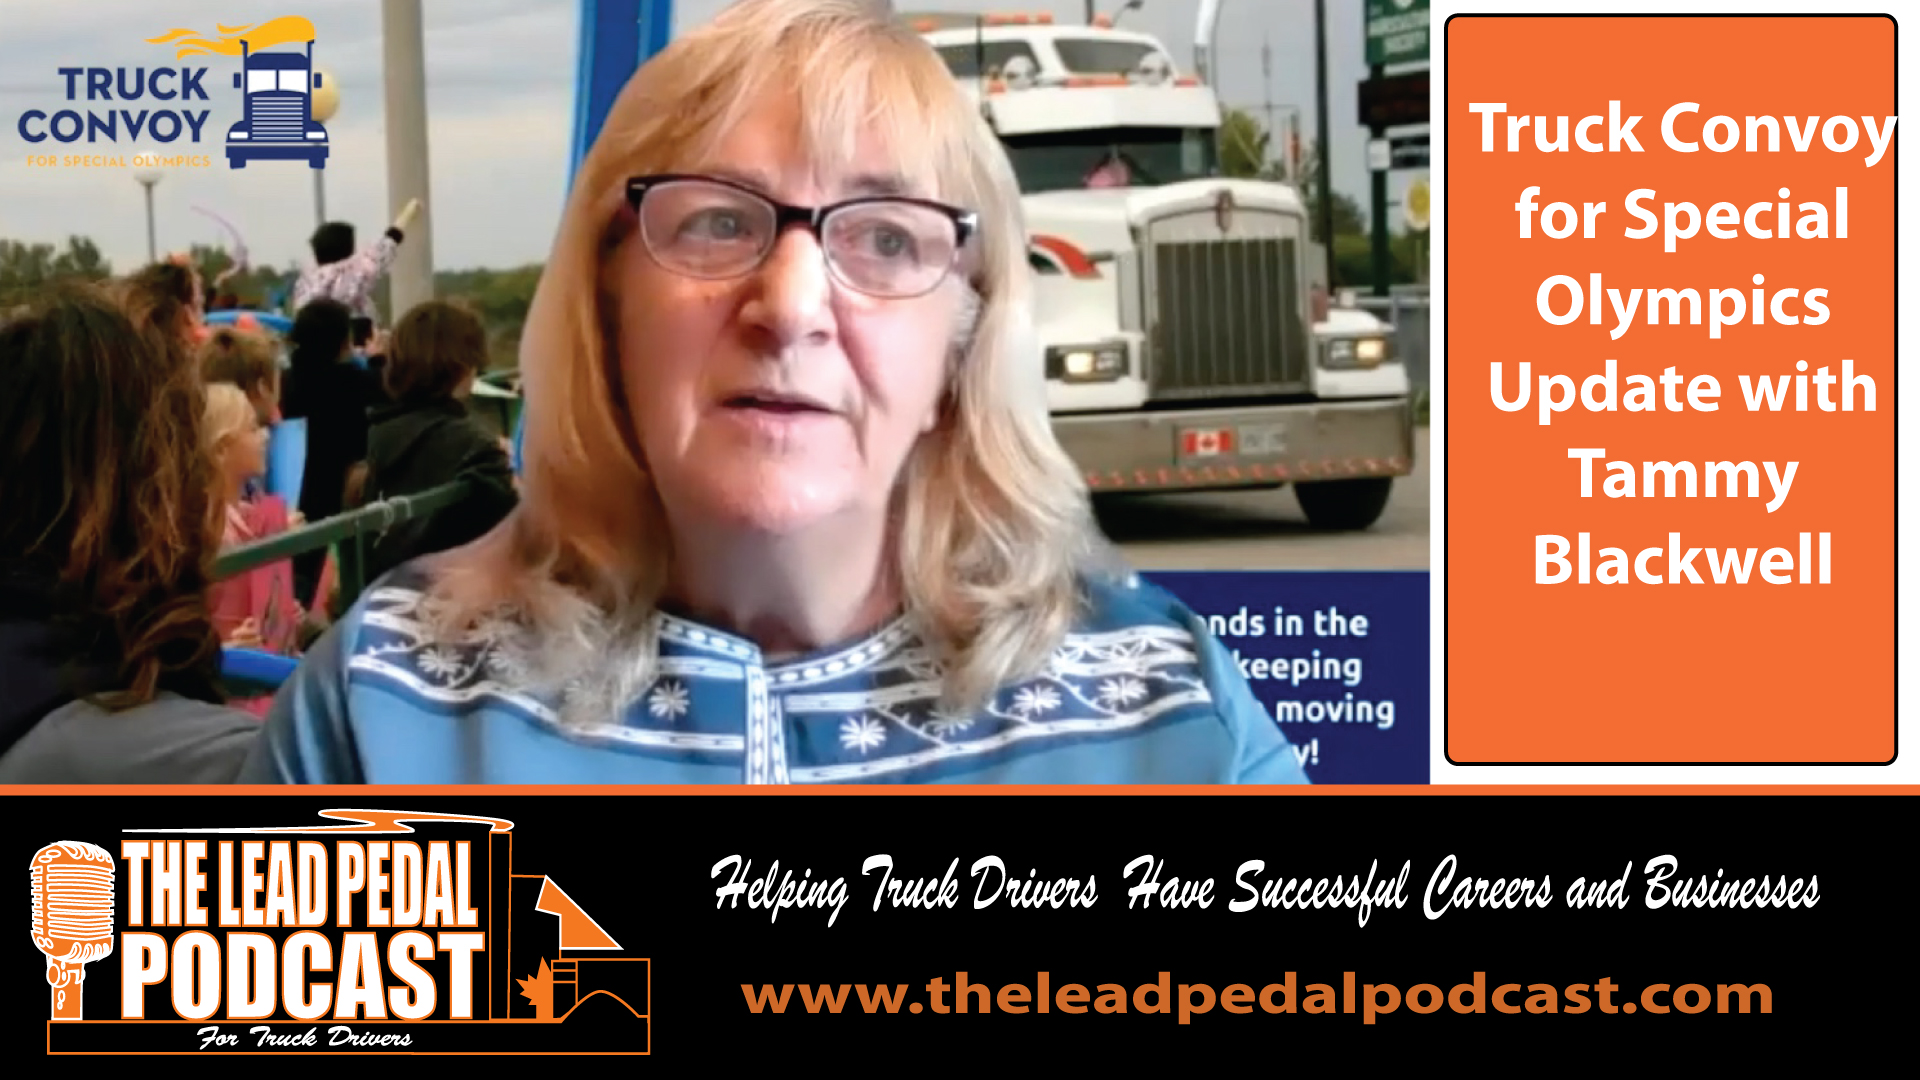 LP658 Truck Convoy for Special Olympics 2021 with Tammy Blackwell